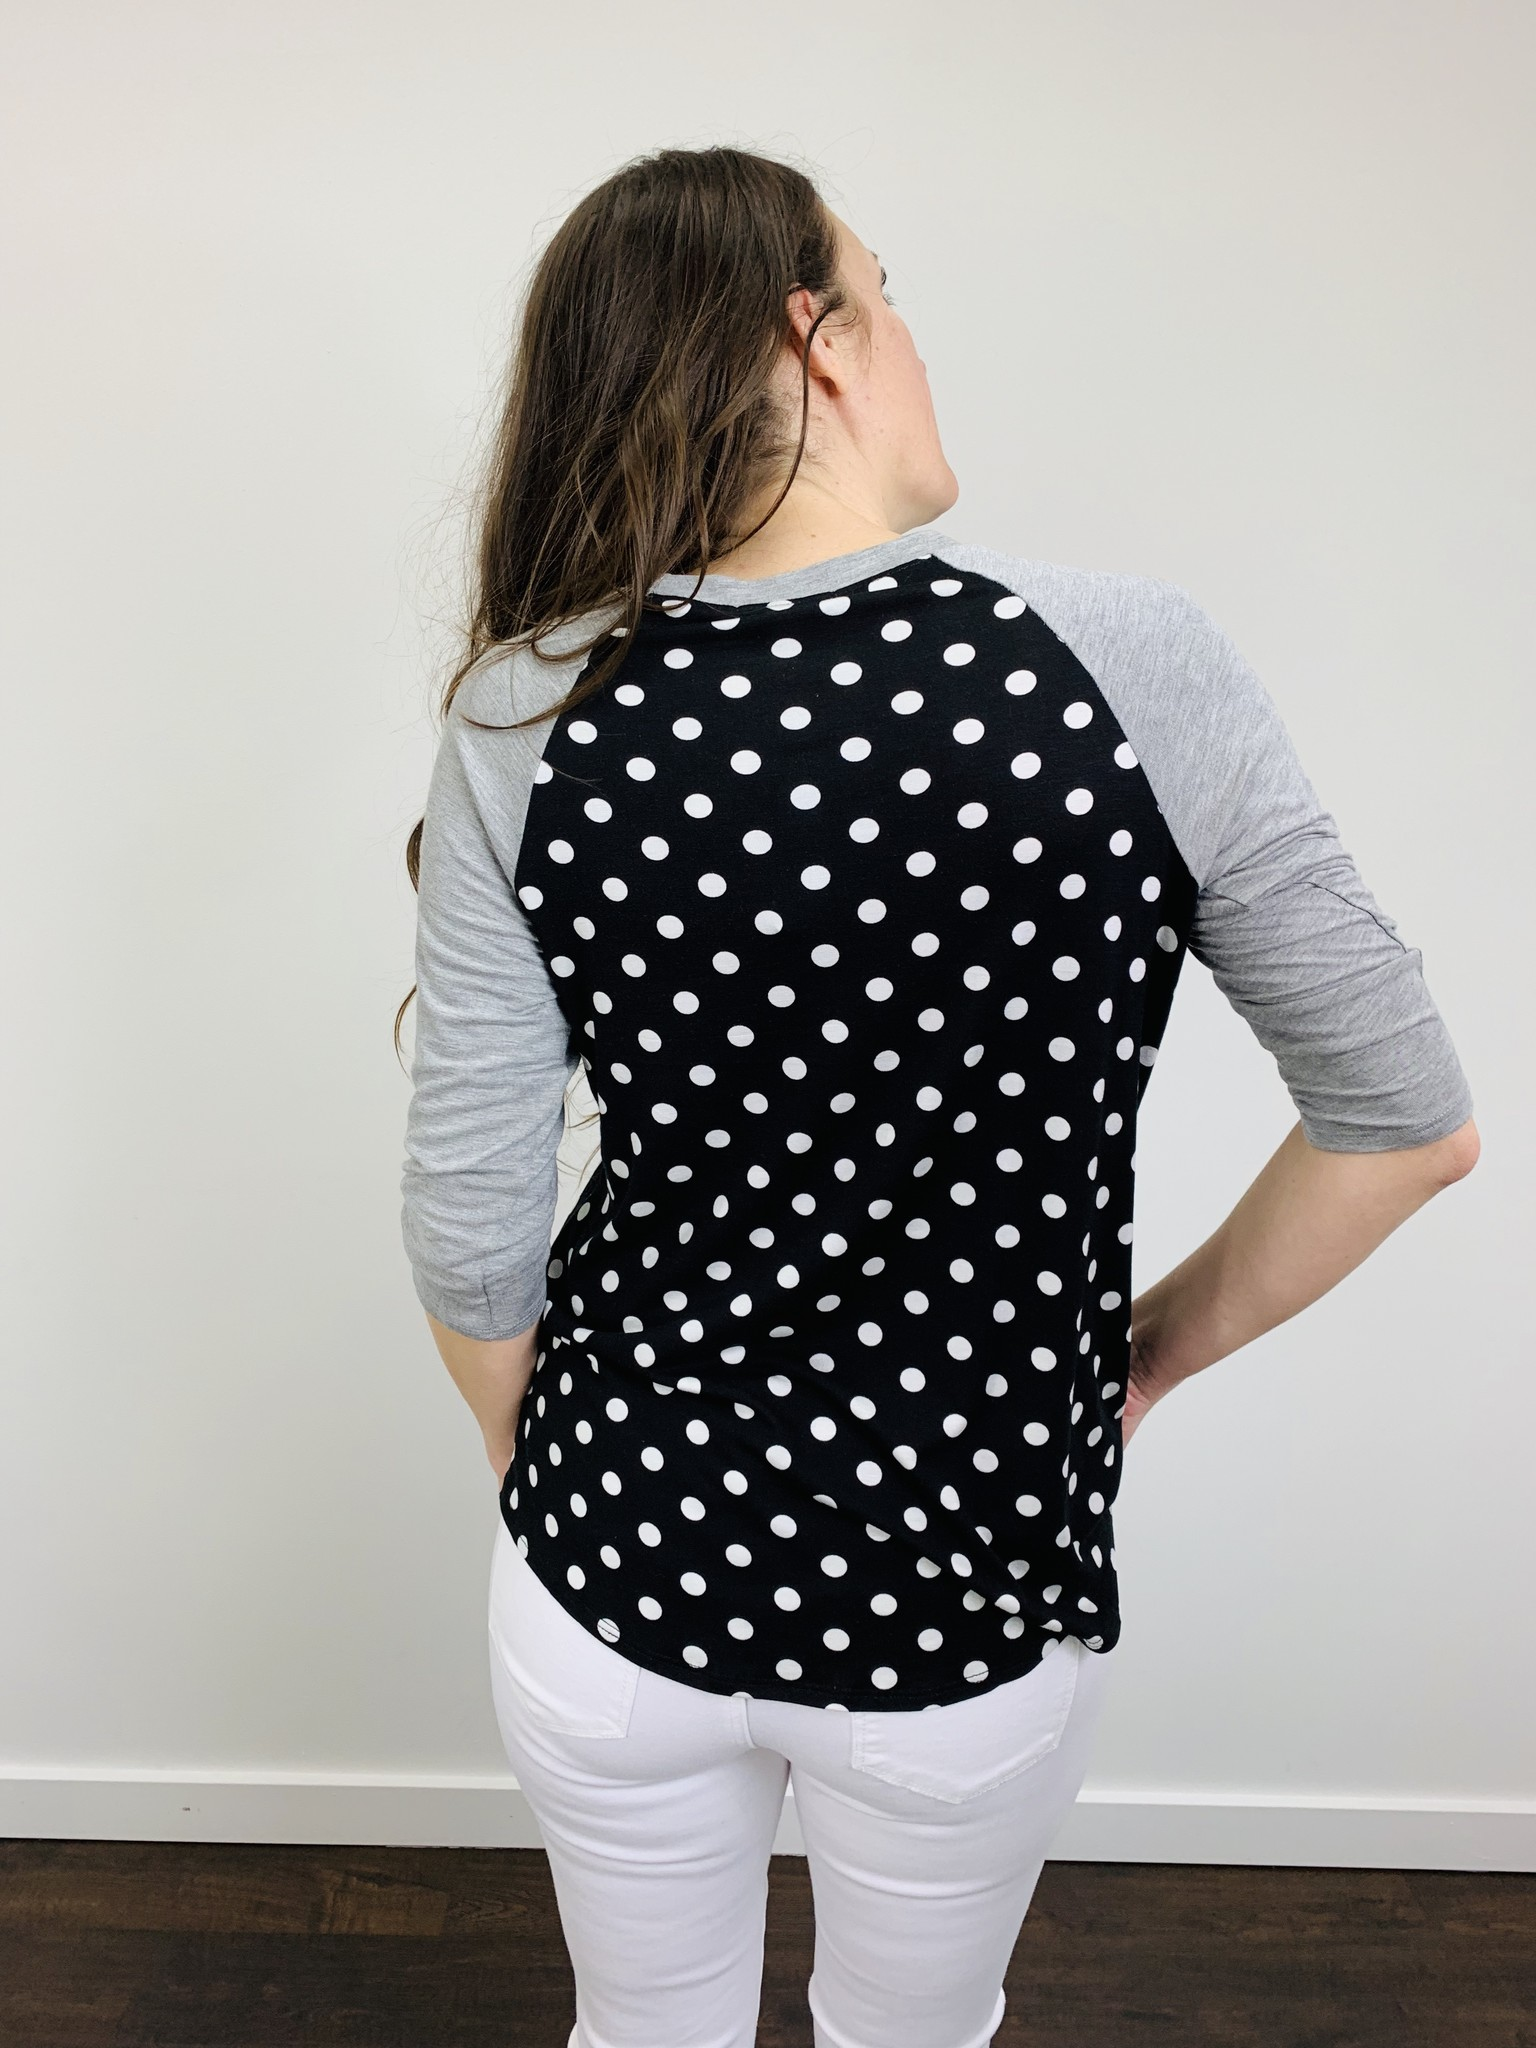 Downeast Ball Game Tee Polka Dot